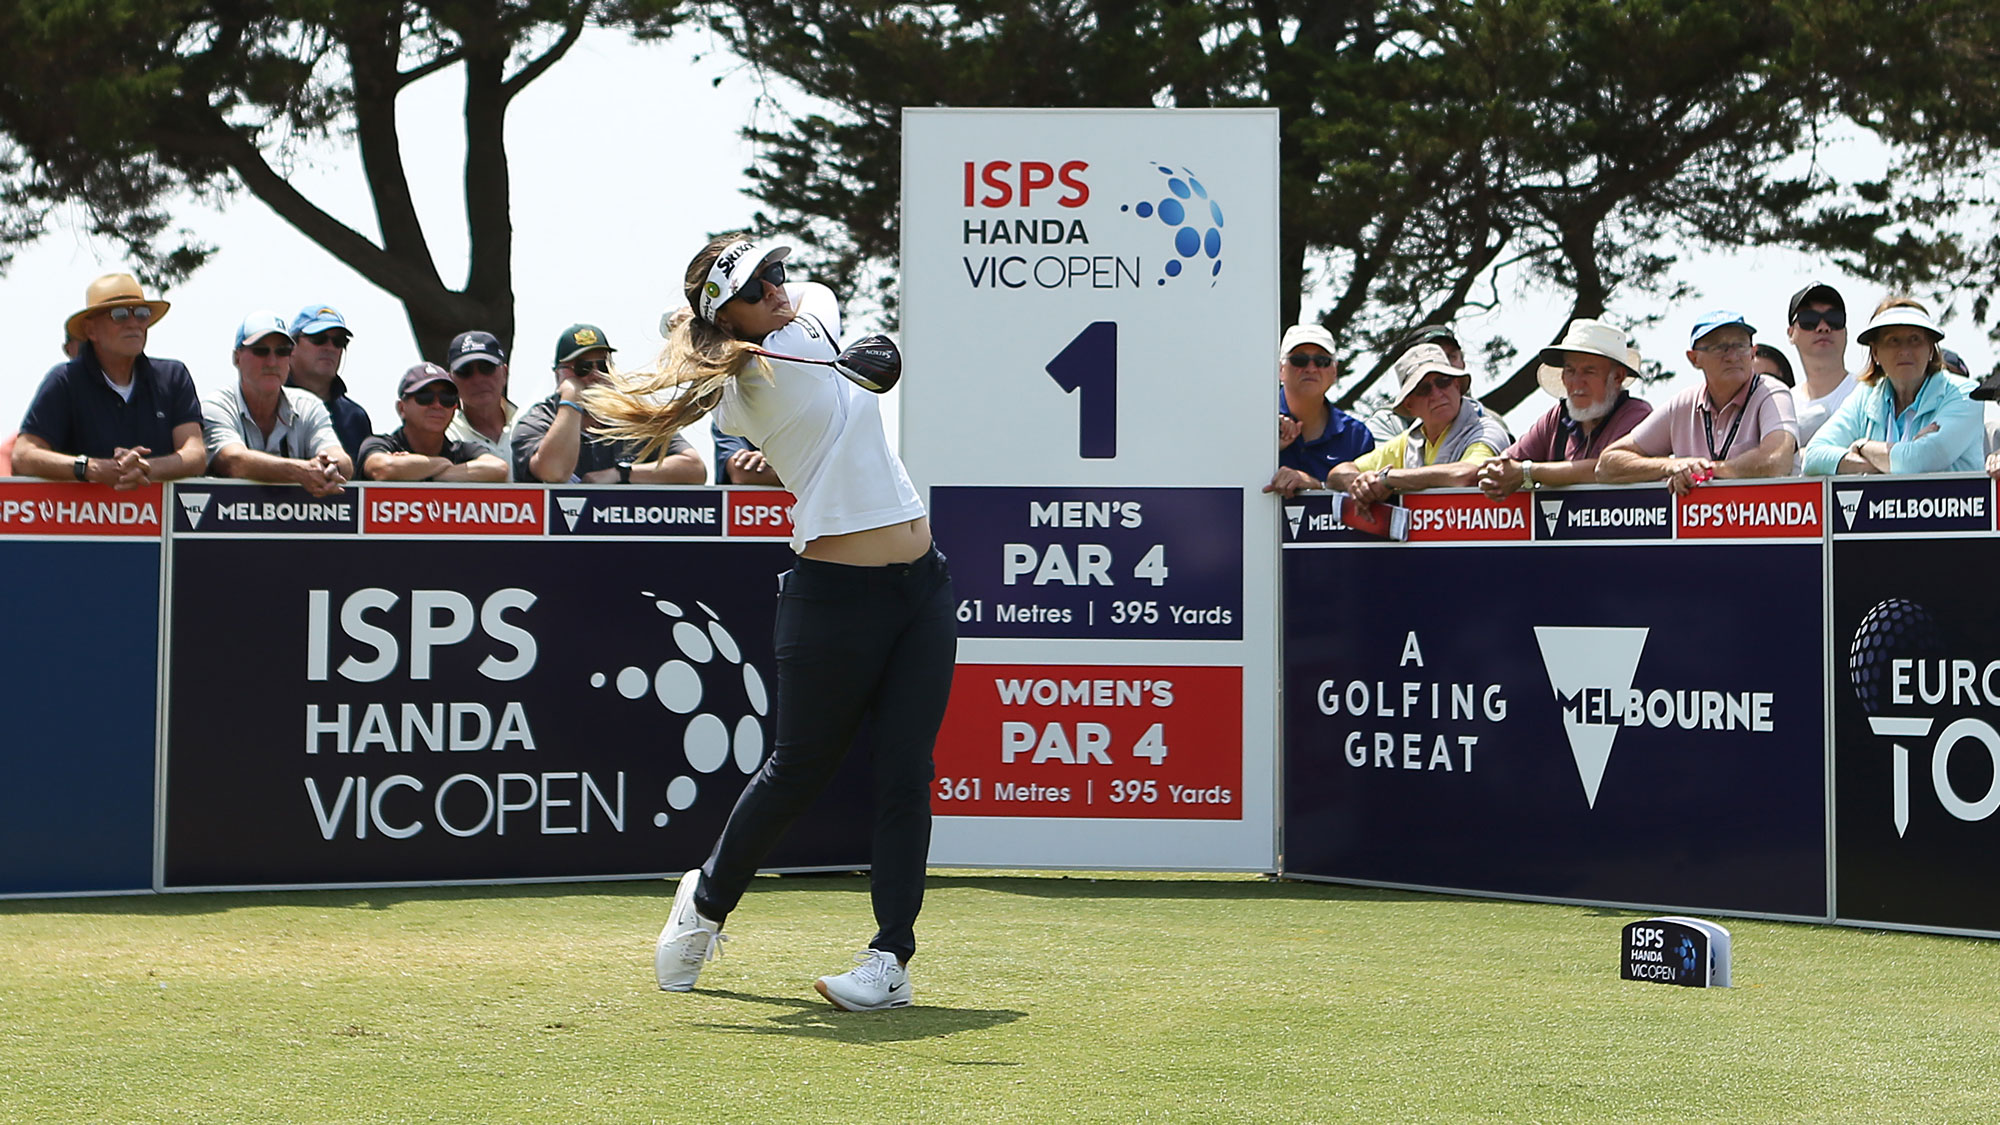 Hannah Green tees off at ISPS Handa Vic Open